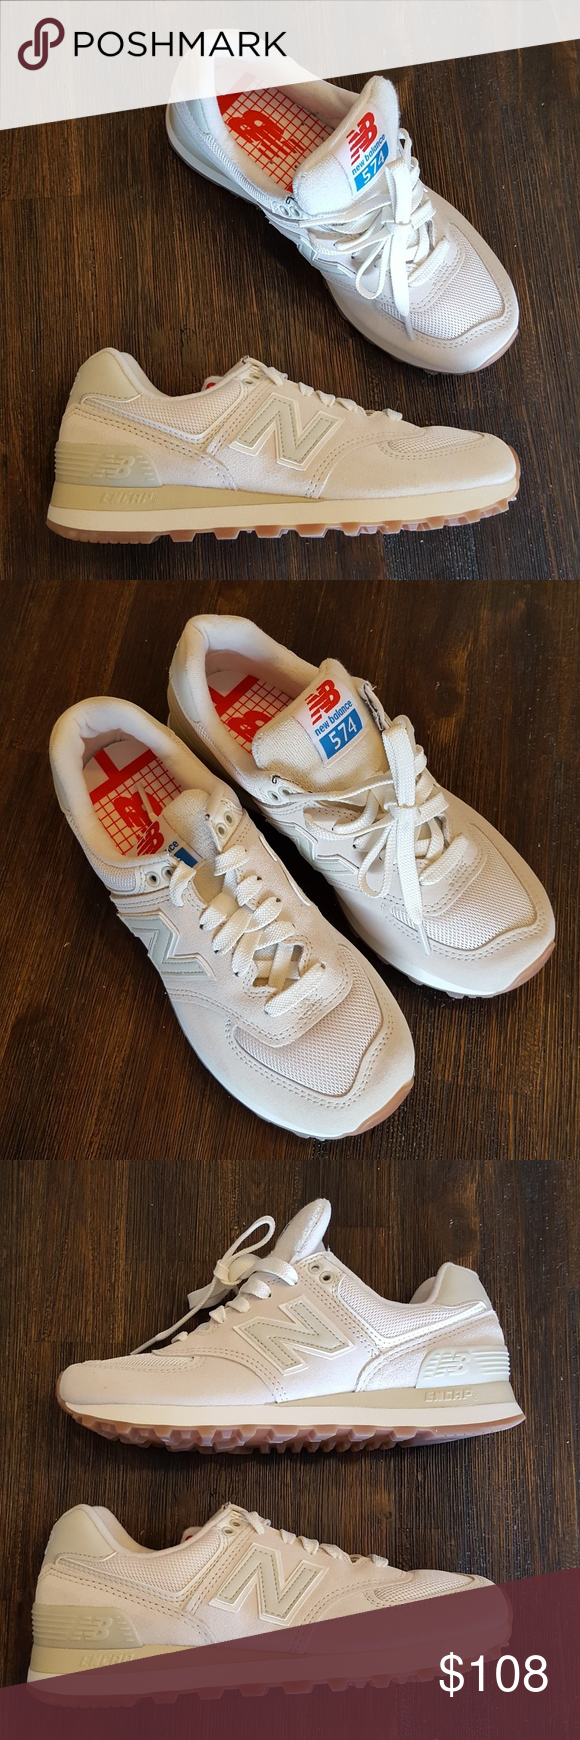 New Balance retro sport sneakers size 7.5 New Balance 574 Classic Endcap  sneakers Size 7.5 Terry cloth tong new balance Shoes Sneakers 237c71e49a7